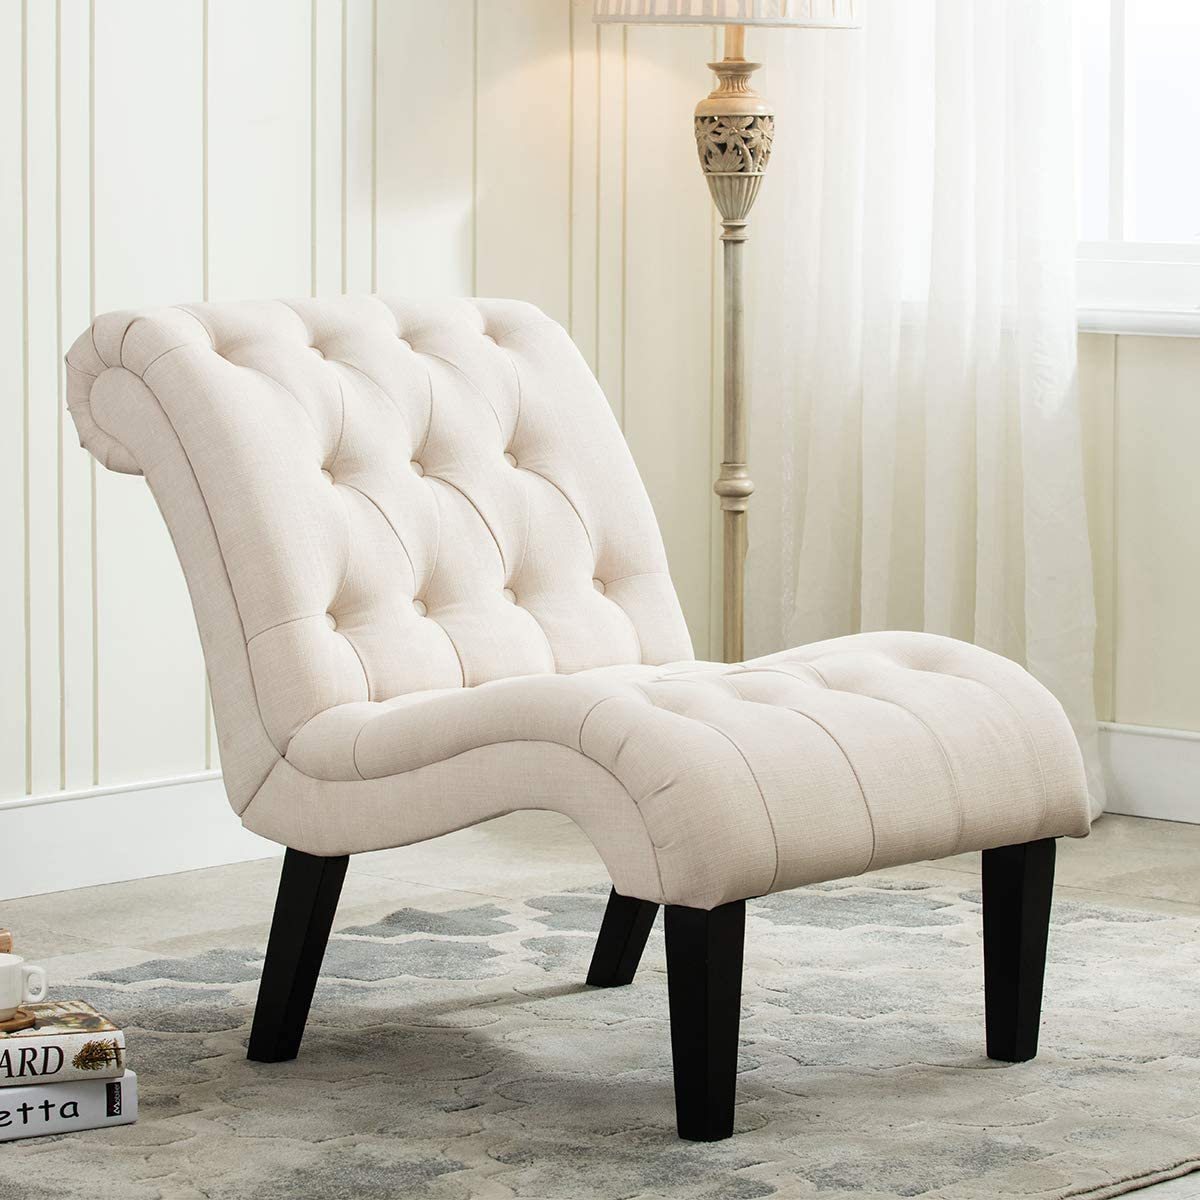 Amazon.com: YongQiang Living Room Chairs Upholstered Tufted